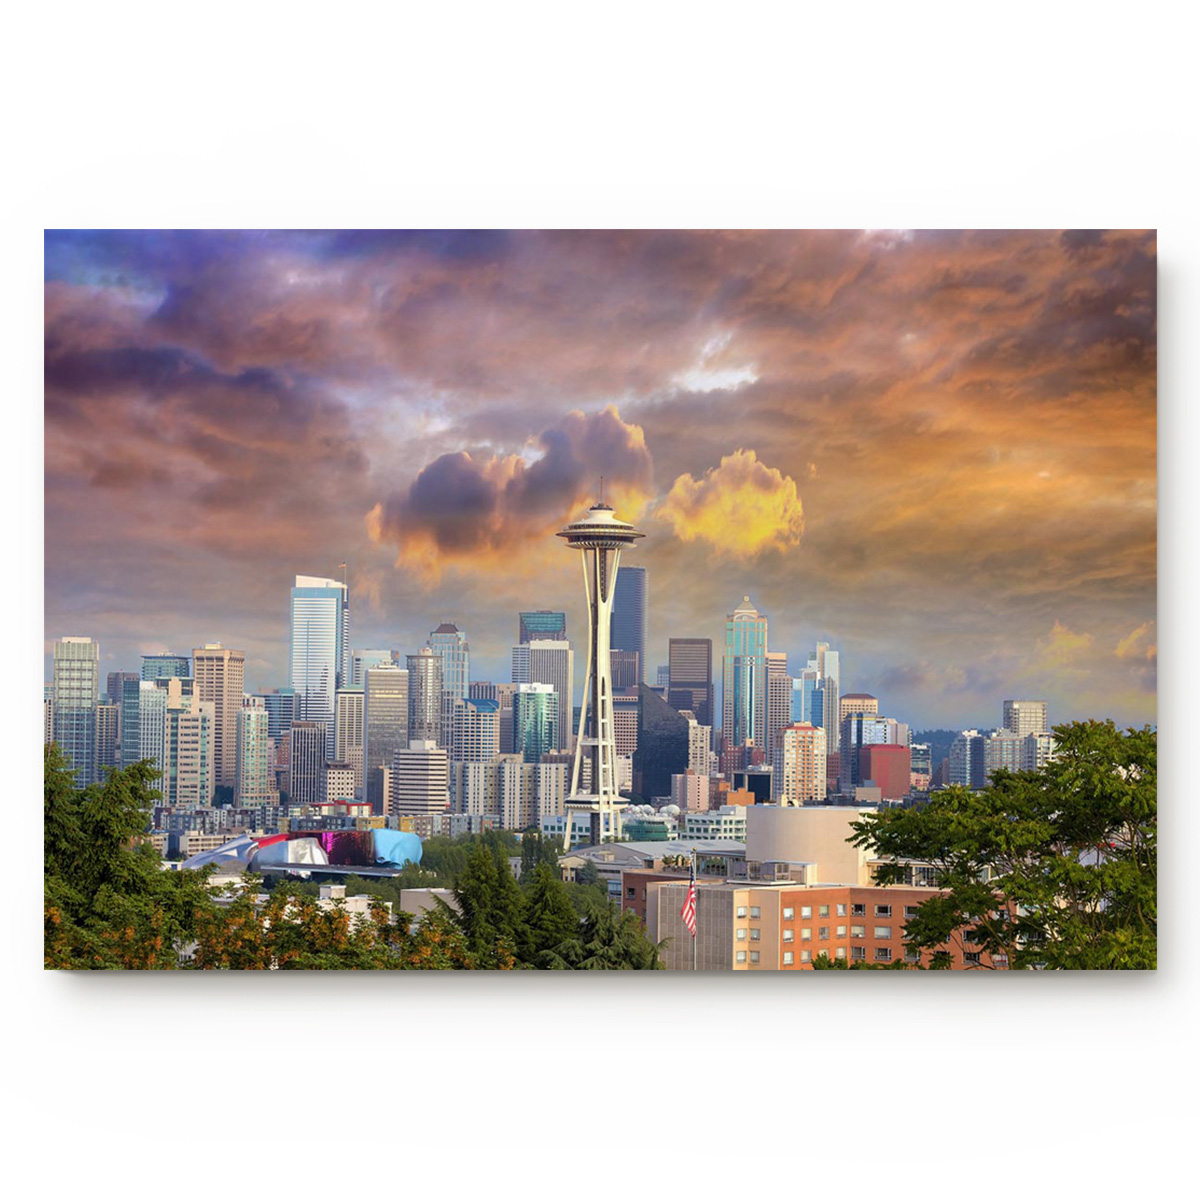 Seattle City Building Sunset And Sunset Beautiful View Of Downtown Americana City Bathroom Decor Rug Mat with Non Slip Rubber image